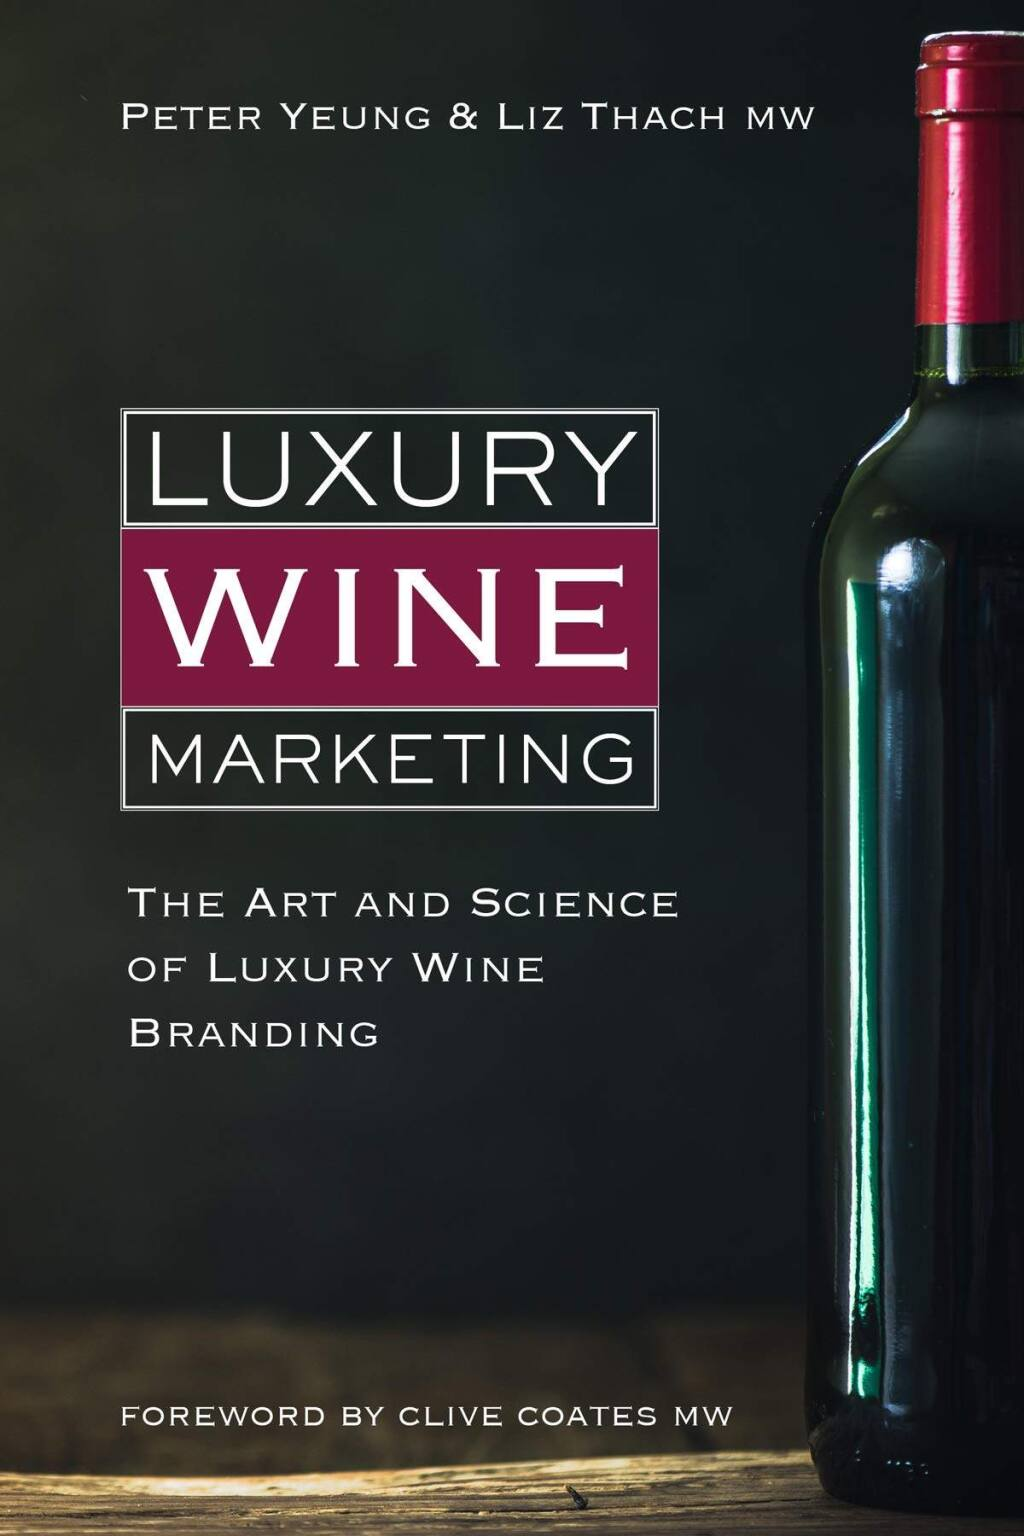 'Luxury Wine Marketing,' a new book by Peter Yeung and Liz Thach may pique the interest of collectors. (Peter Yeung and Liz Thach)